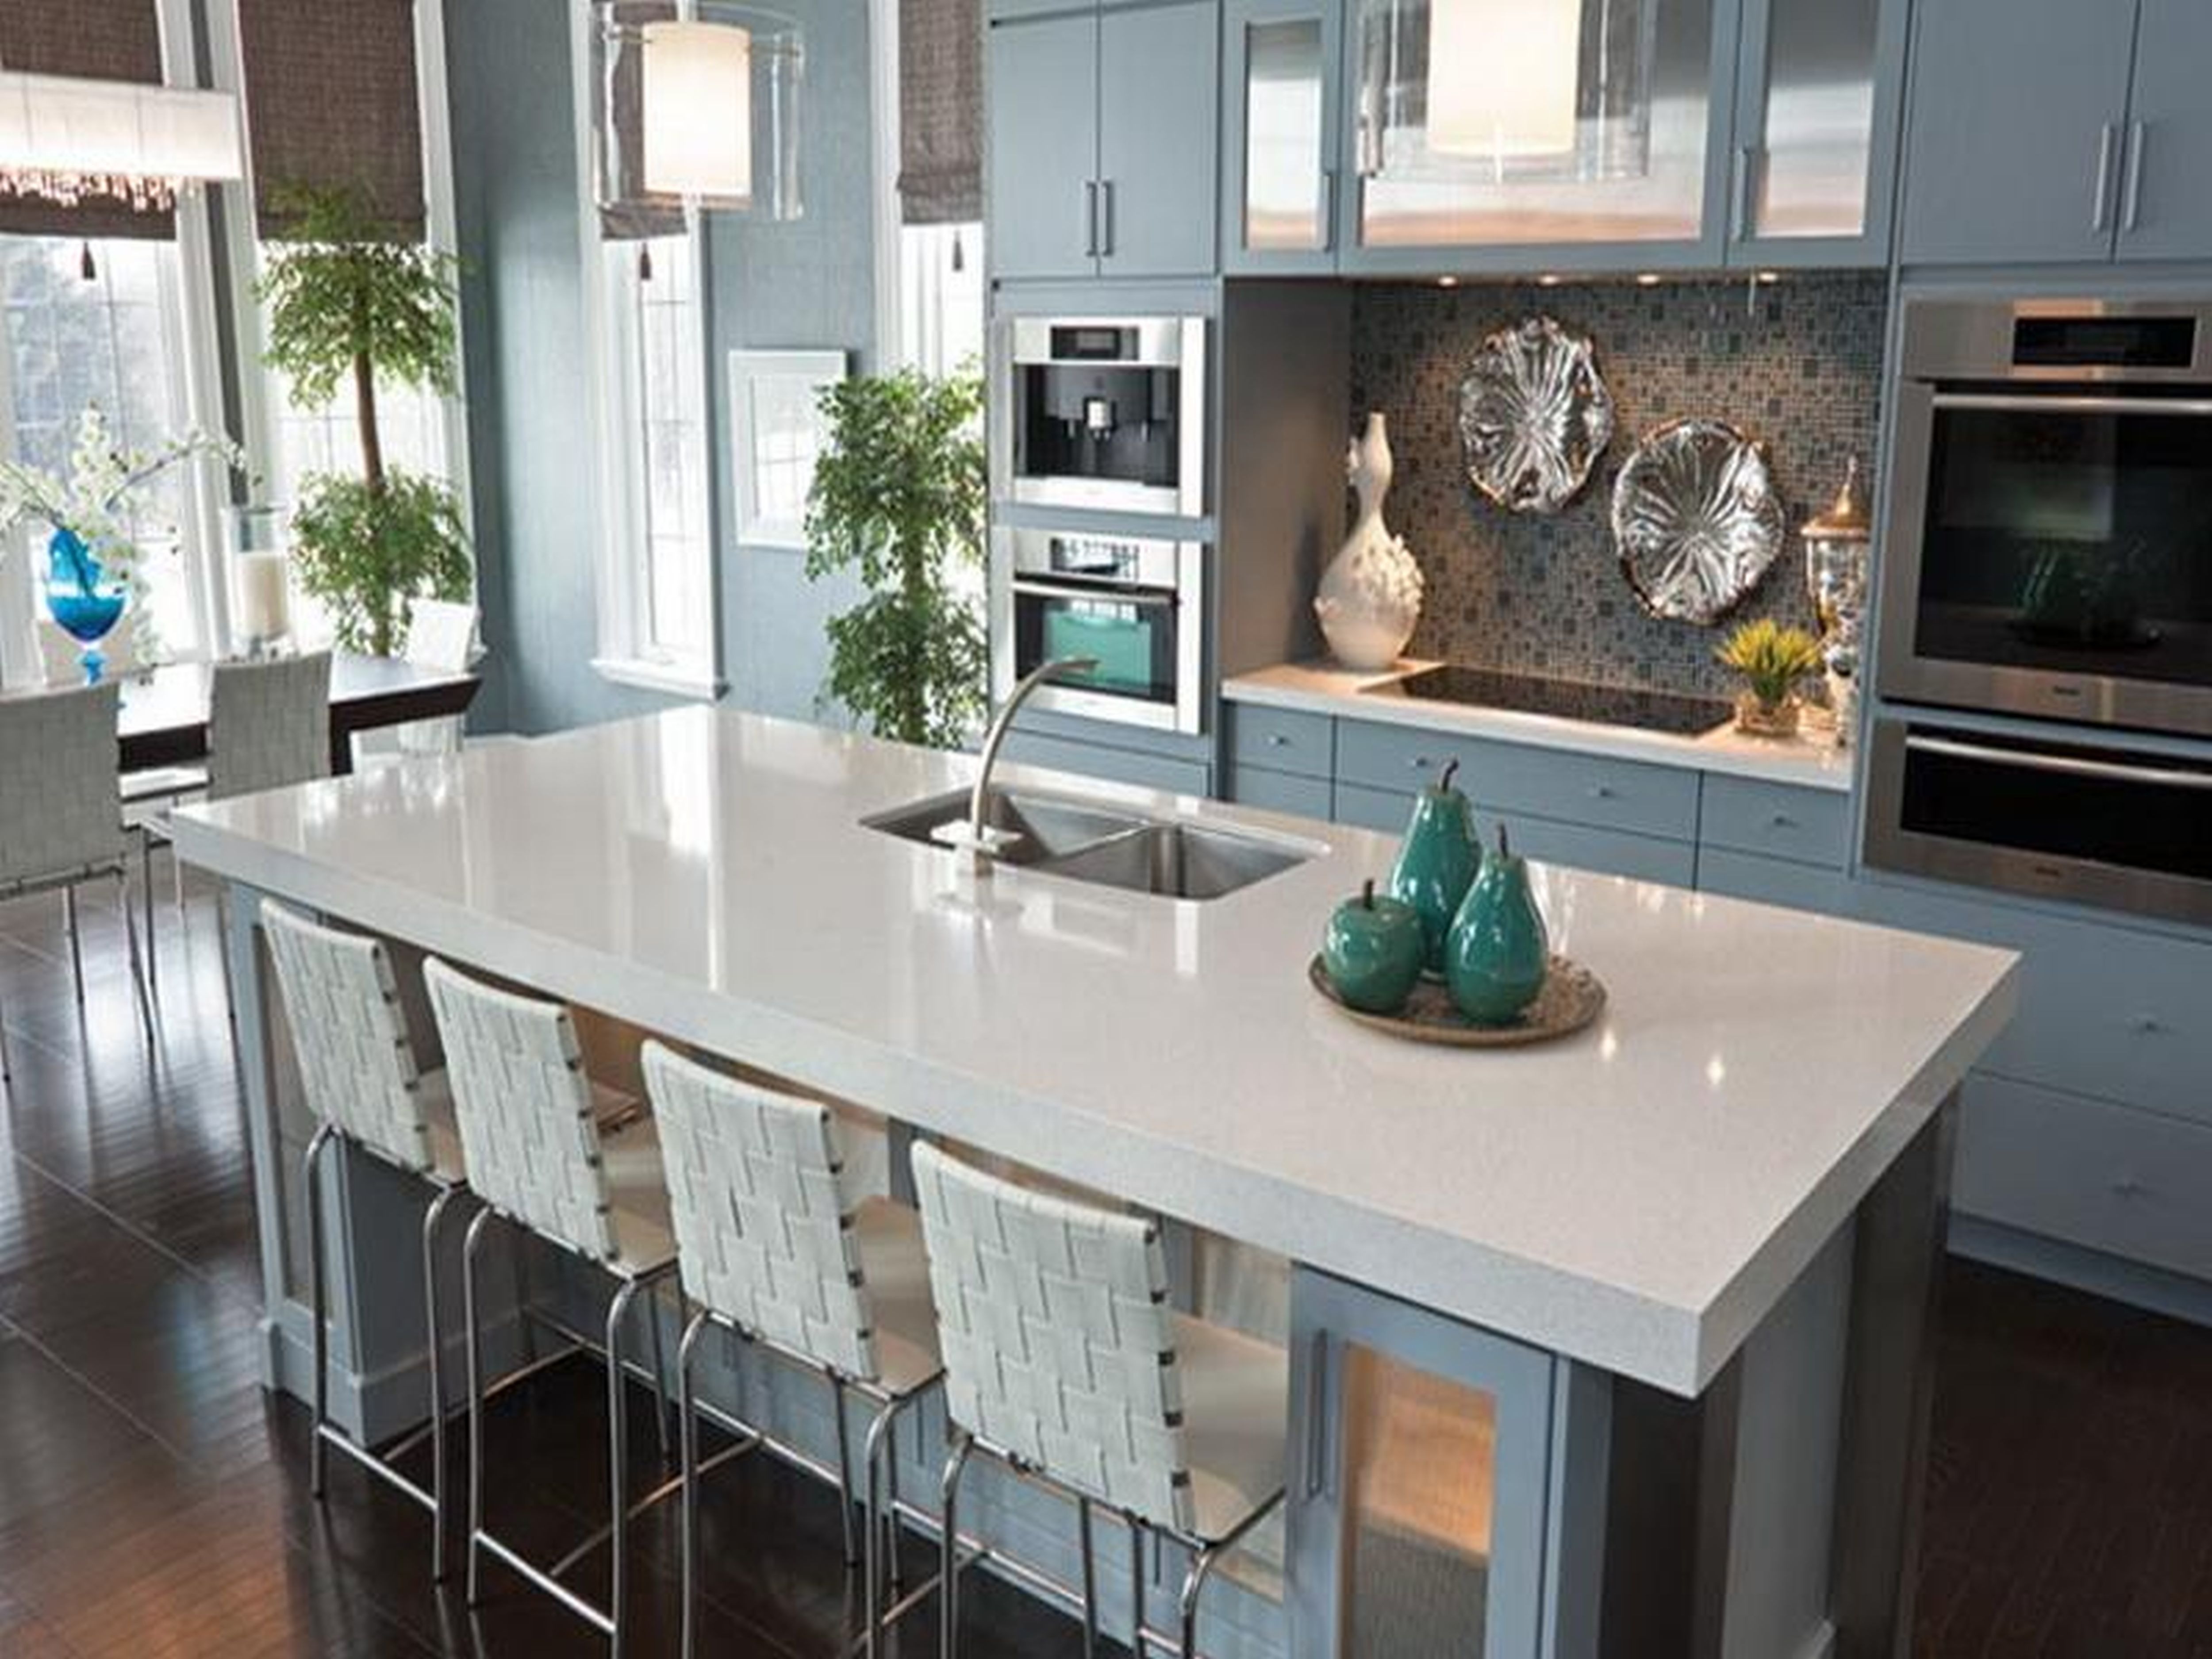 tile countertops cost kitchen countertops cost 17 Best Ideas About Quartz Countertops Cost On Pinterest Granite